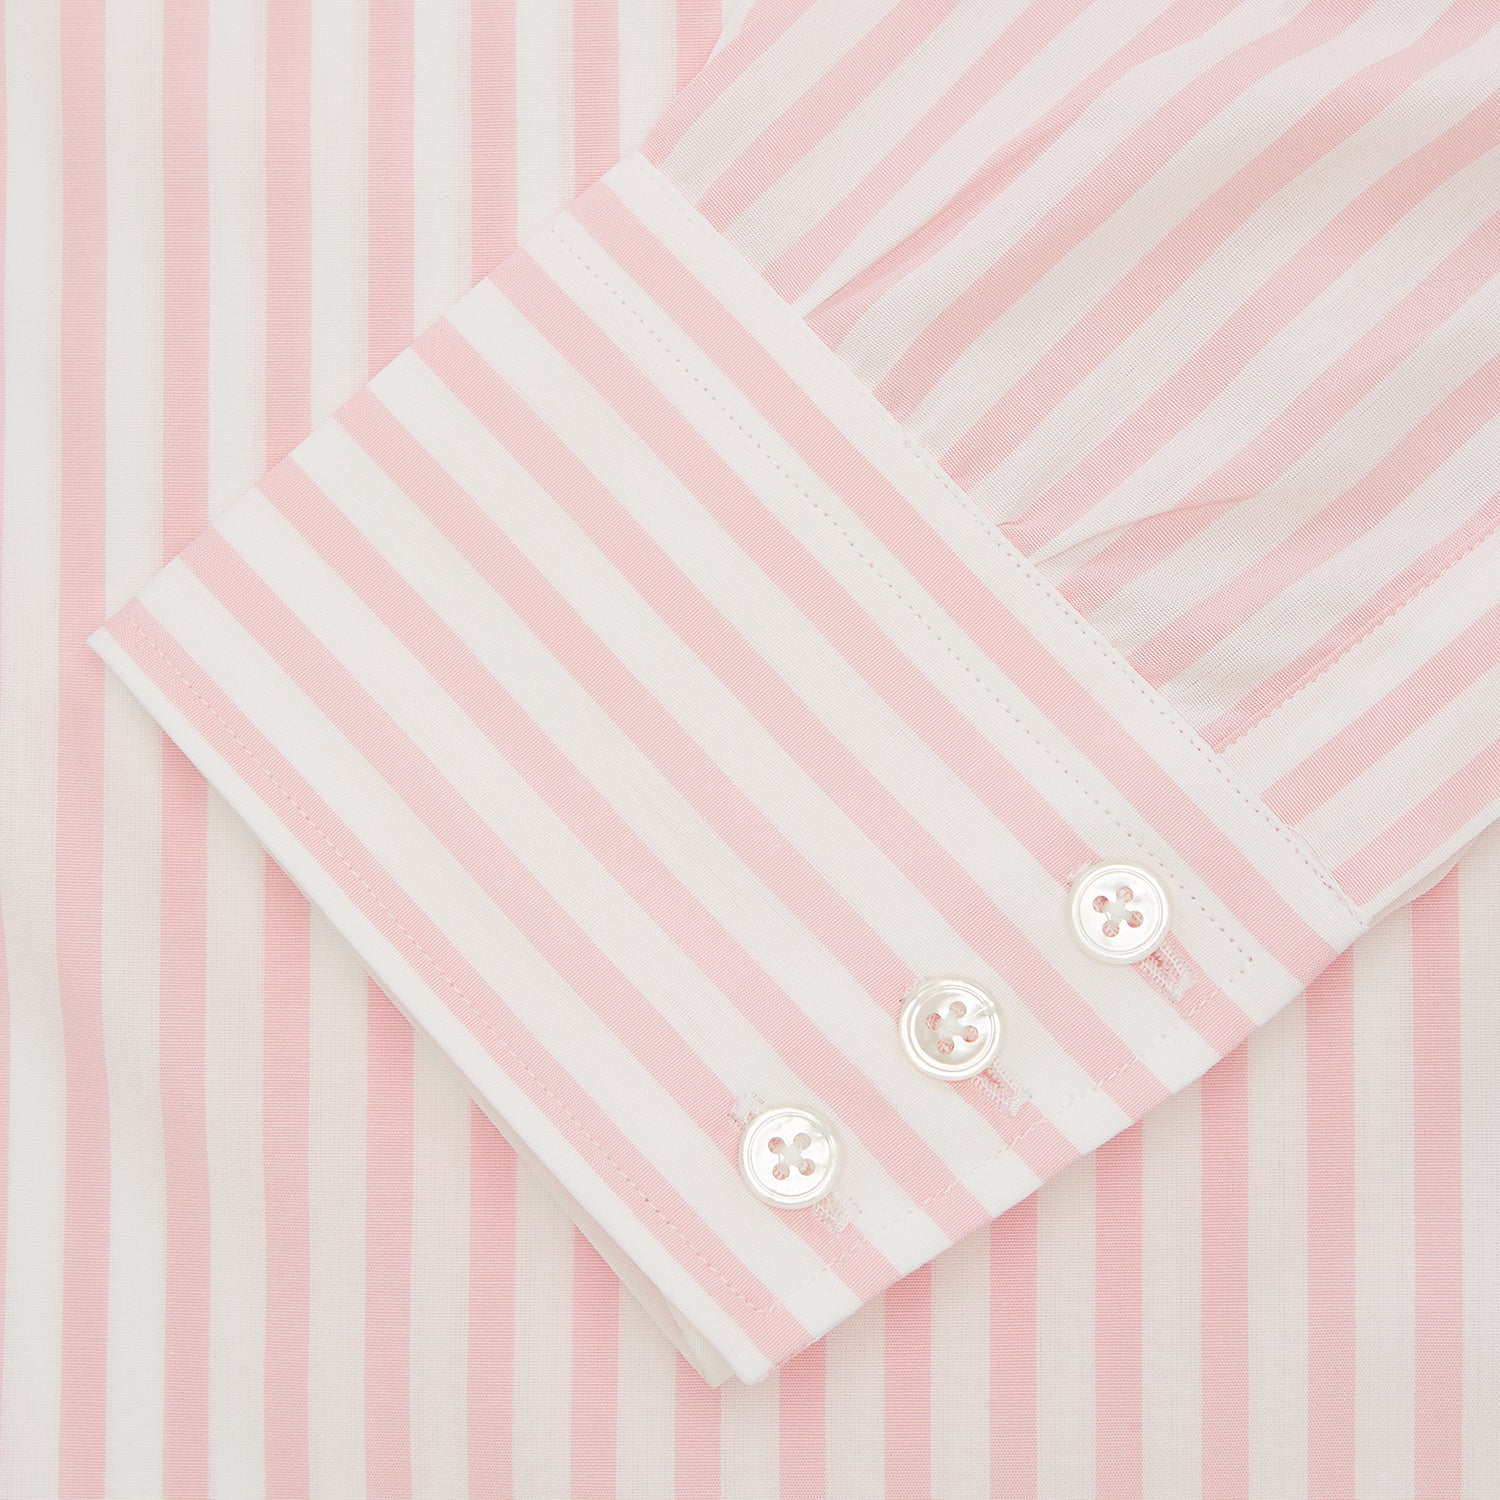 Pink & White Candy Stripe Poplin Regular Fit Shirt with T&A Collar & 3-Button Cuffs